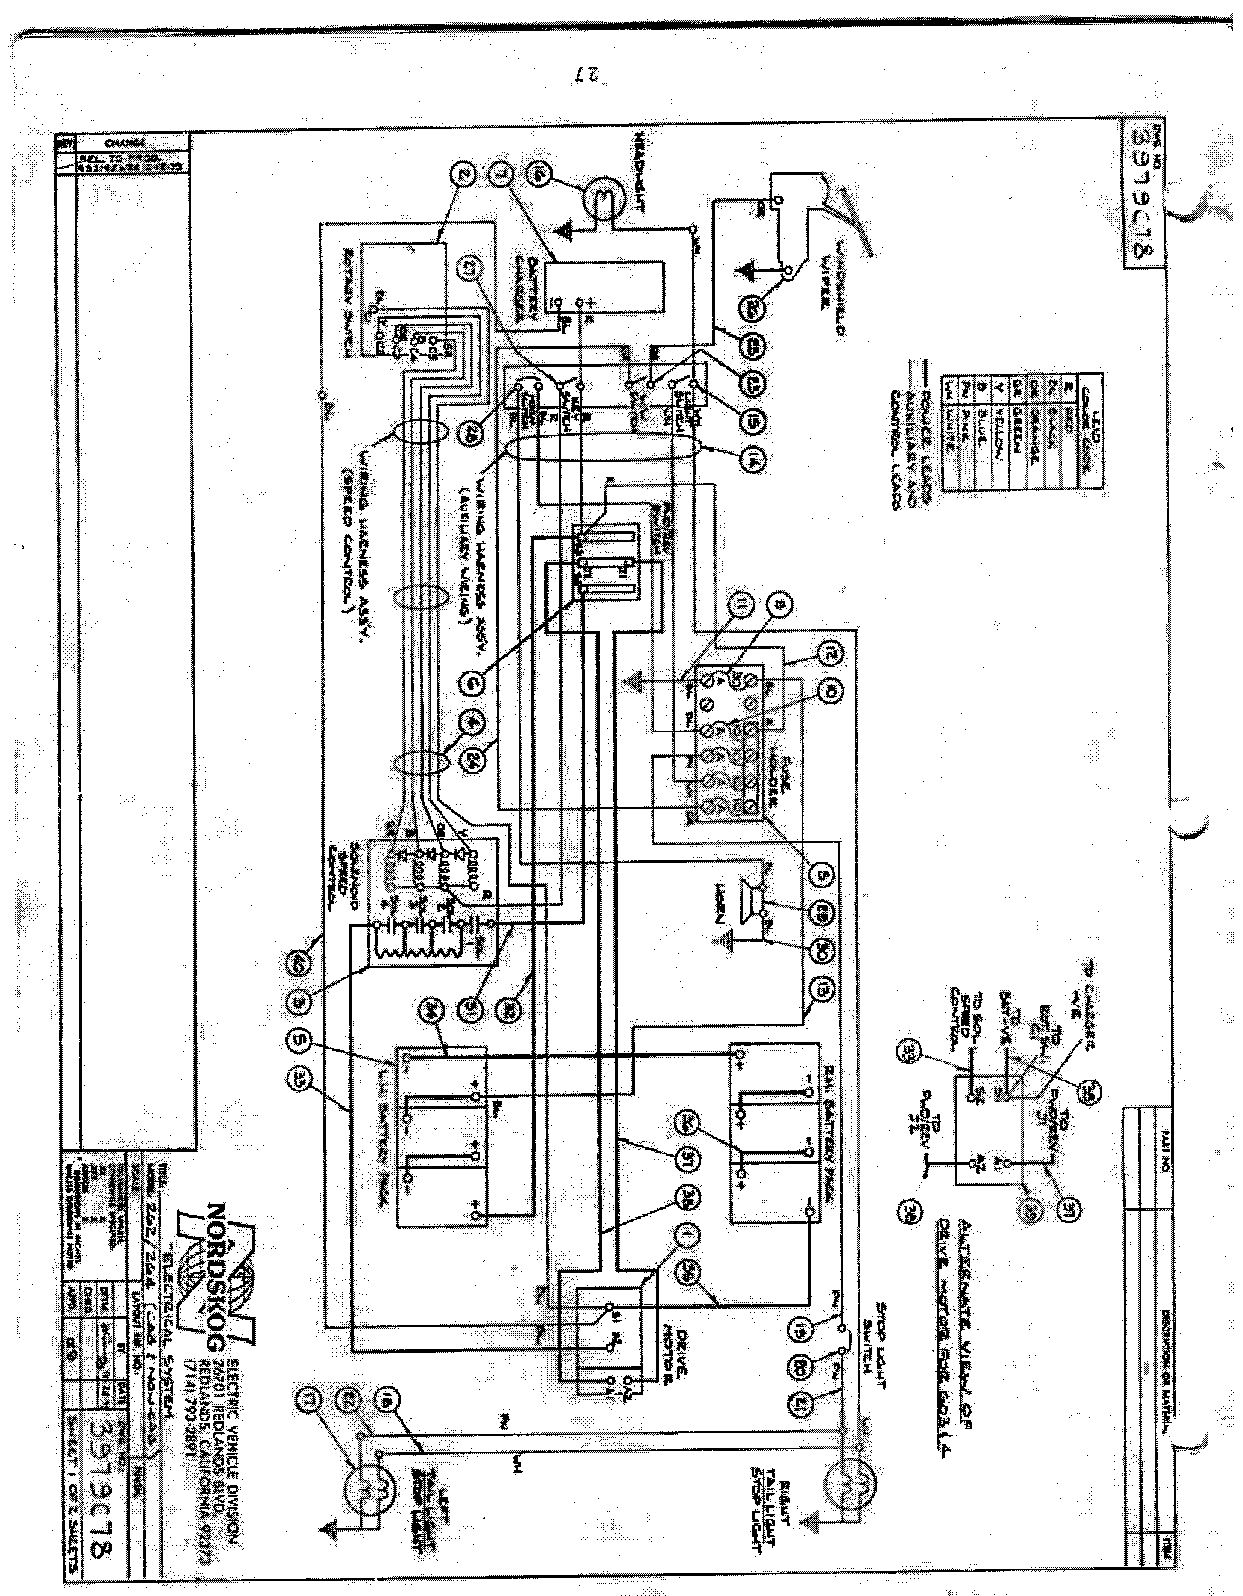 Melex 212 Wiring Diagram - Wiring Diagrams Folder on